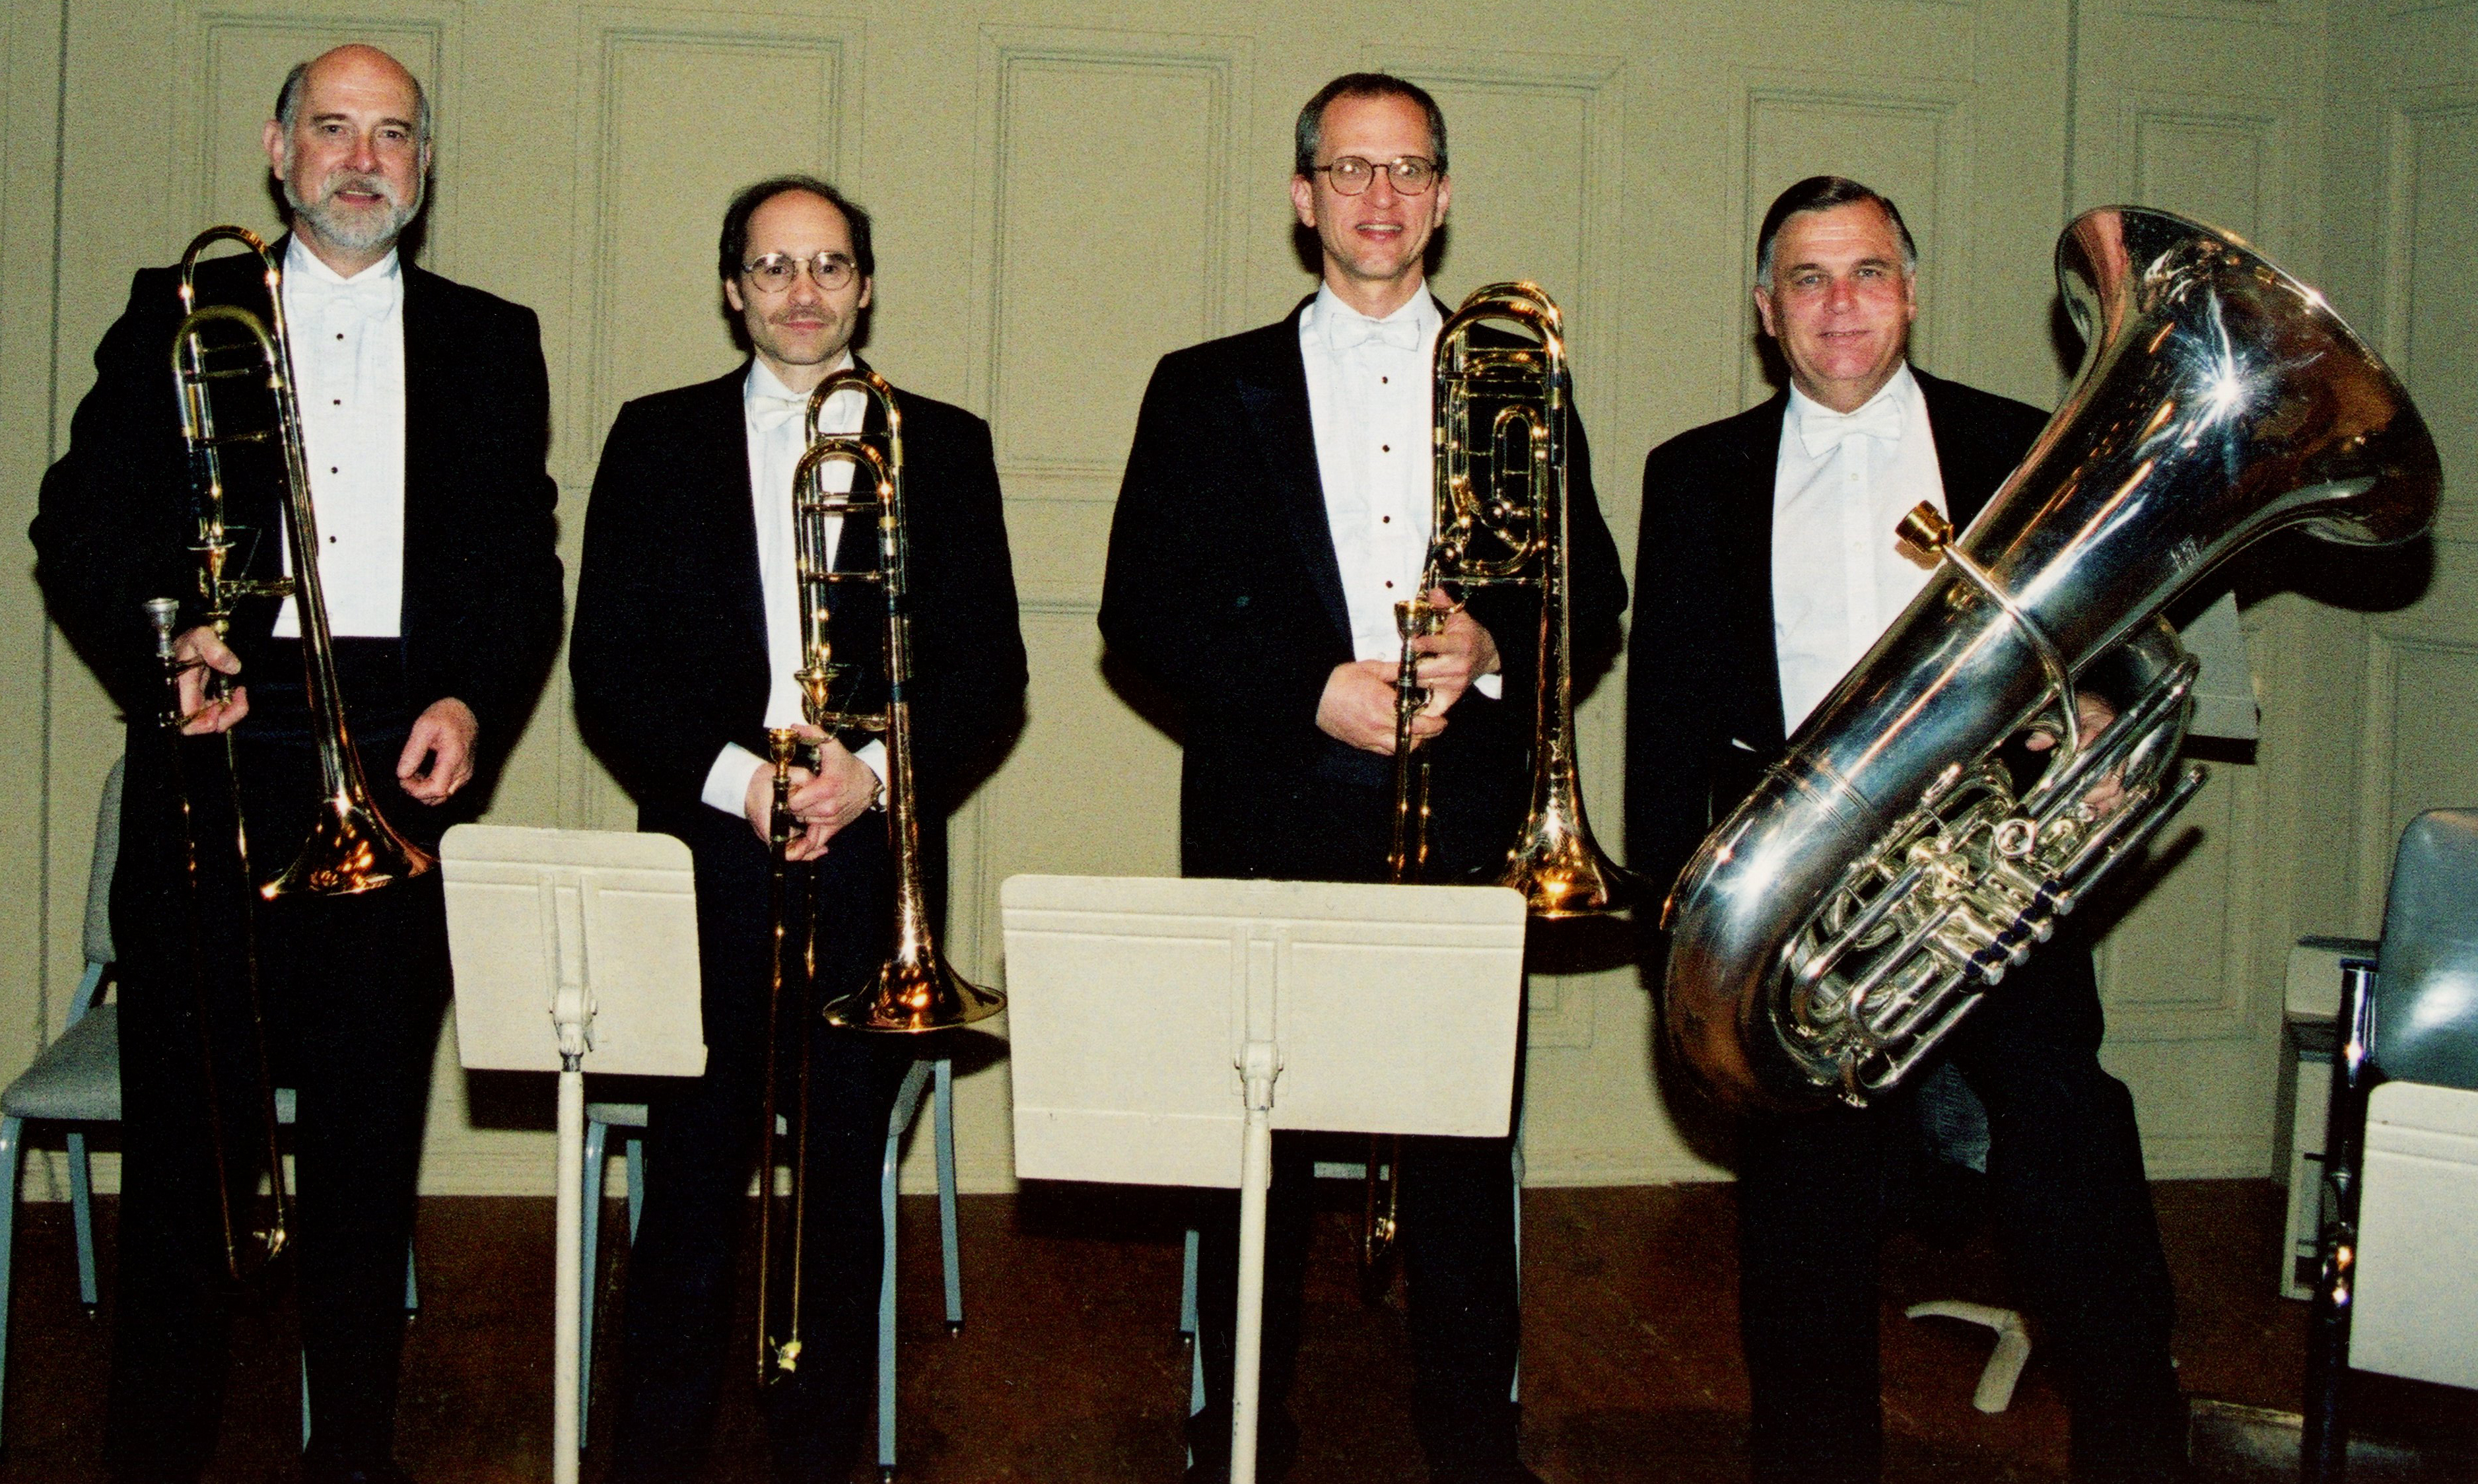 Boston_Symphony_low_brass_section_Barron_Bolter_Yeo_Schmitz_2001_standing